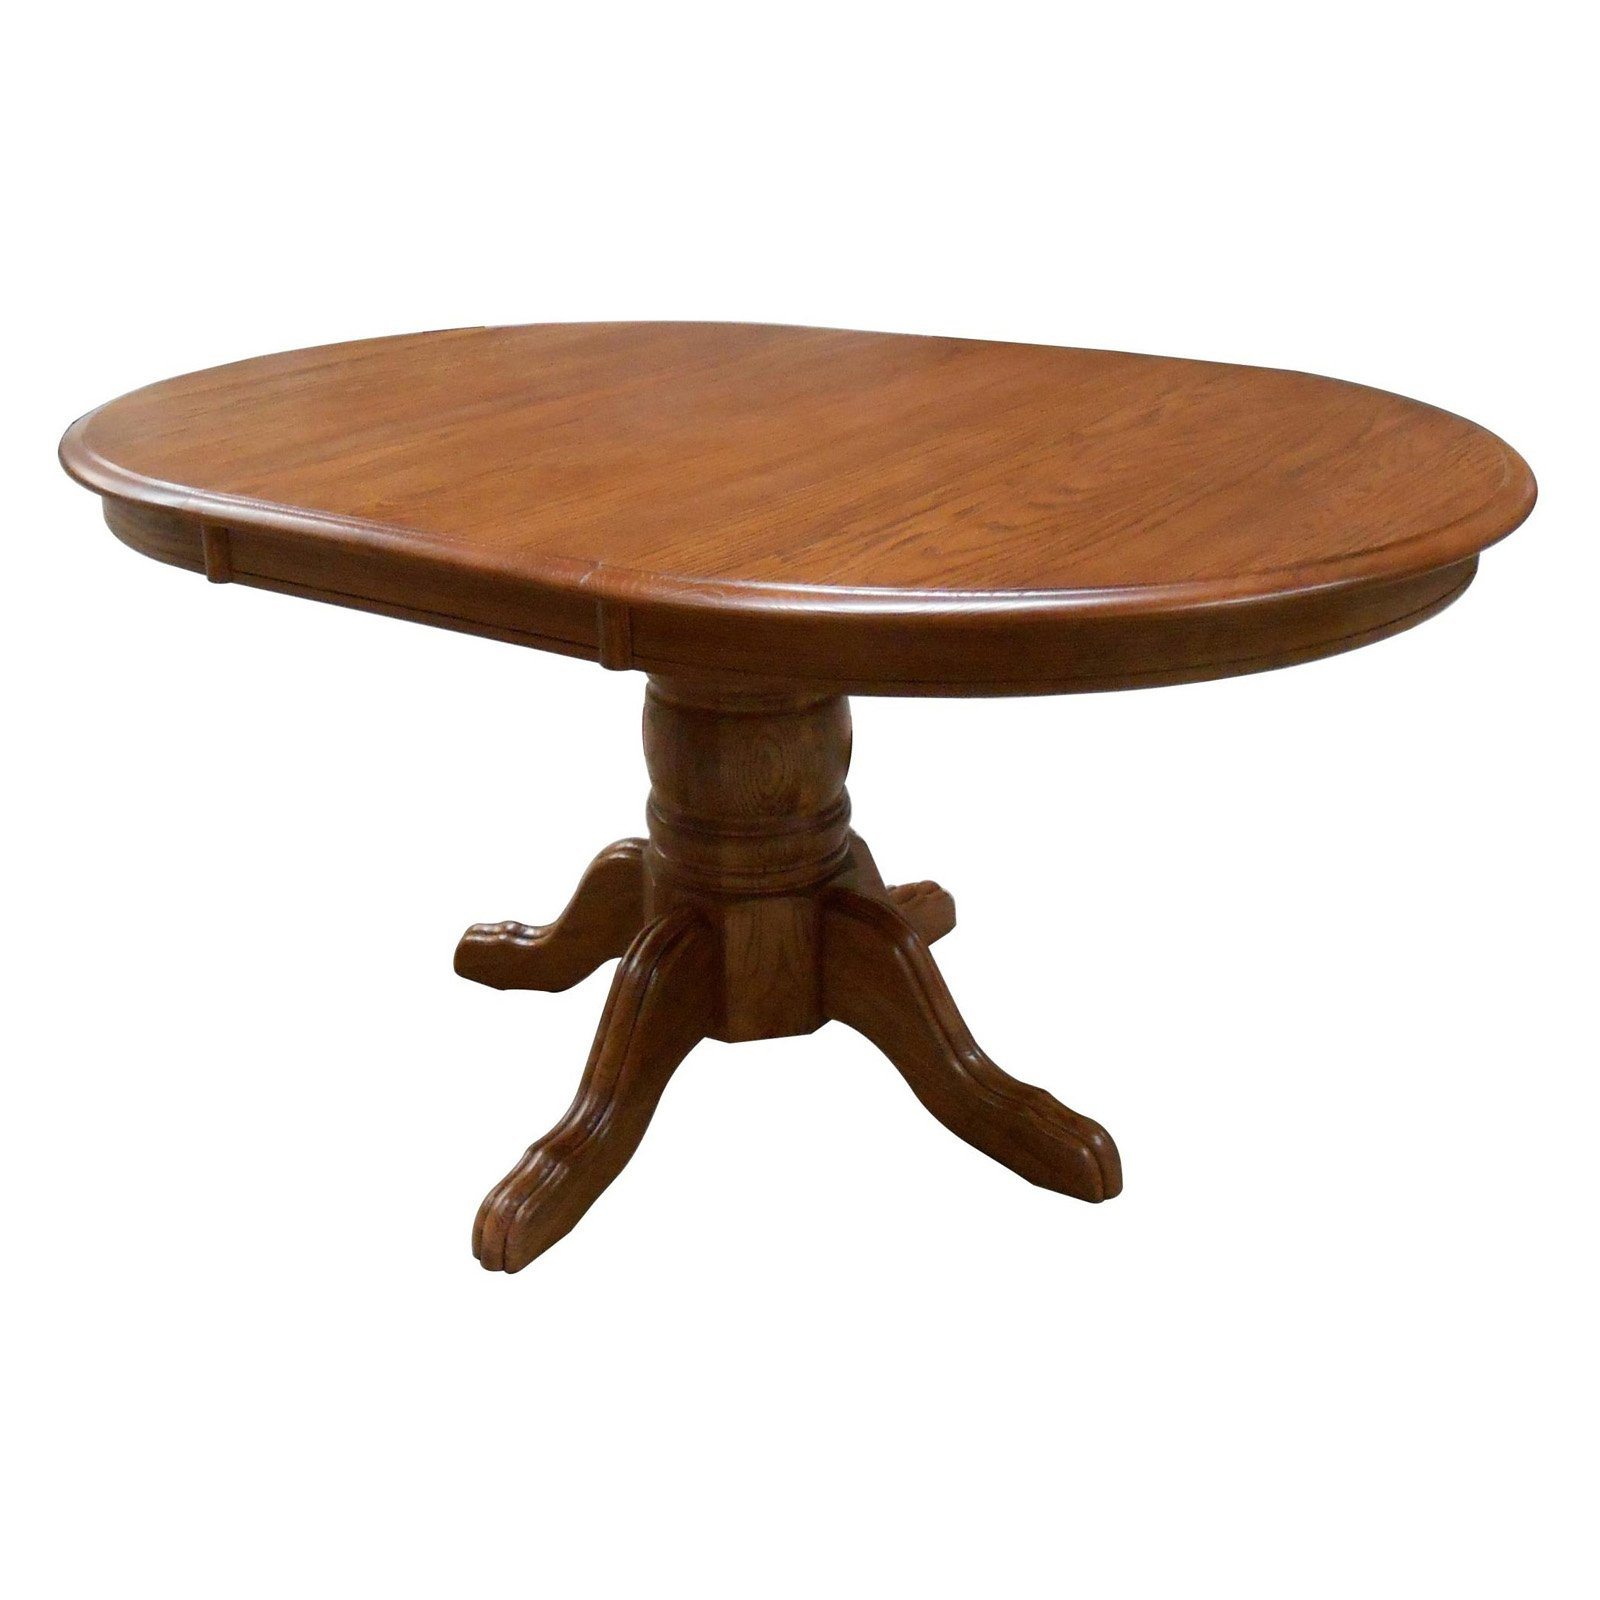 Chelsea Home Softwood Pedestal Dining Table by Chelsea Home Furniture LLC.